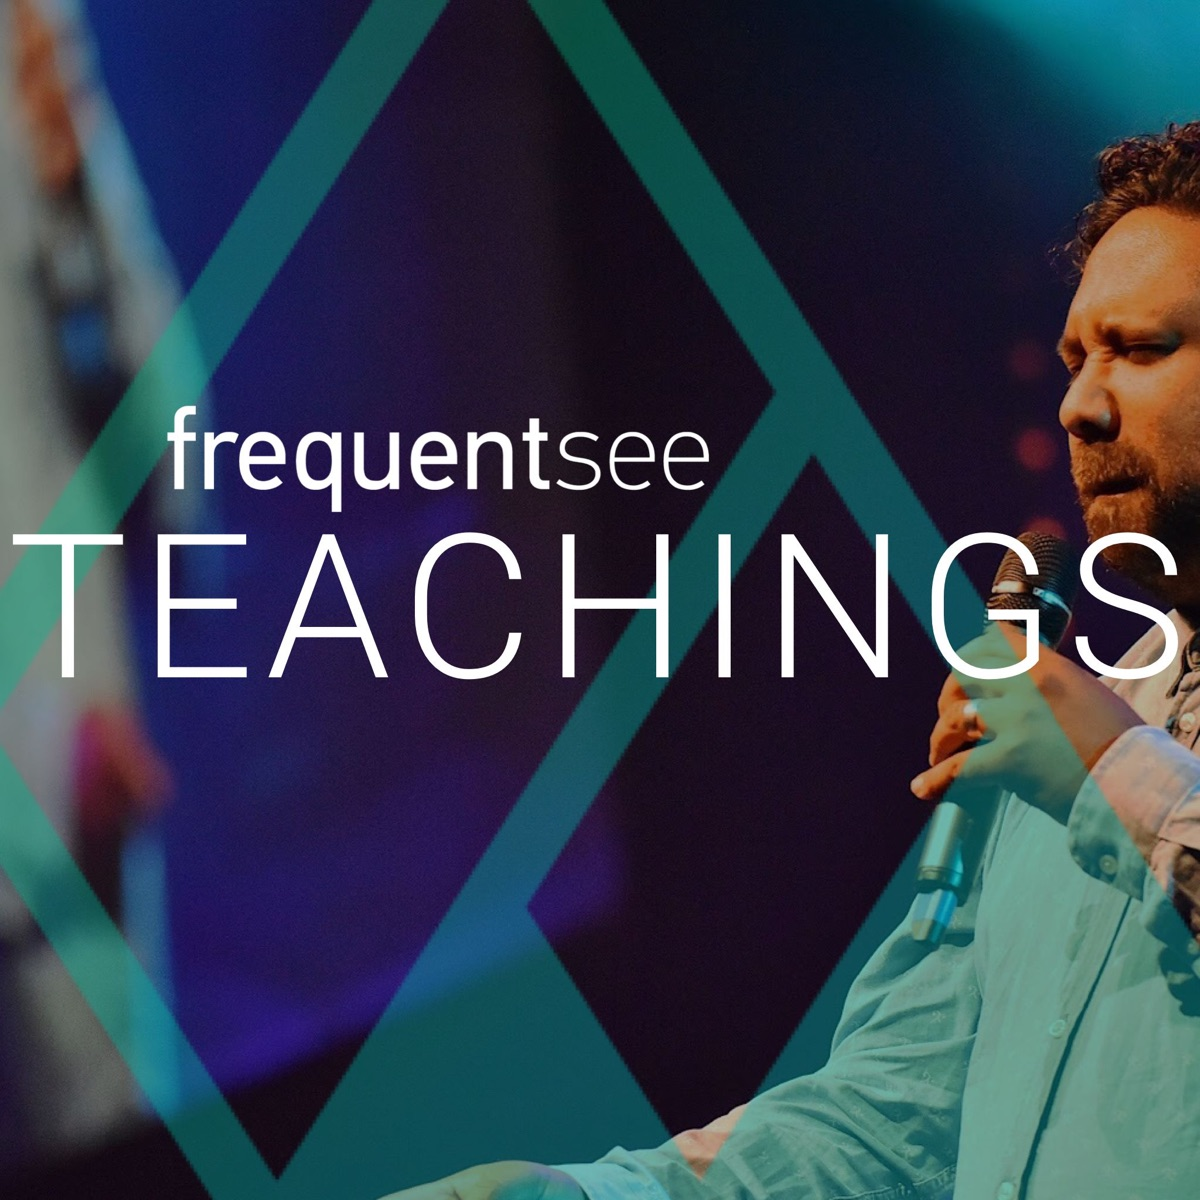 Frequentsee Teachings